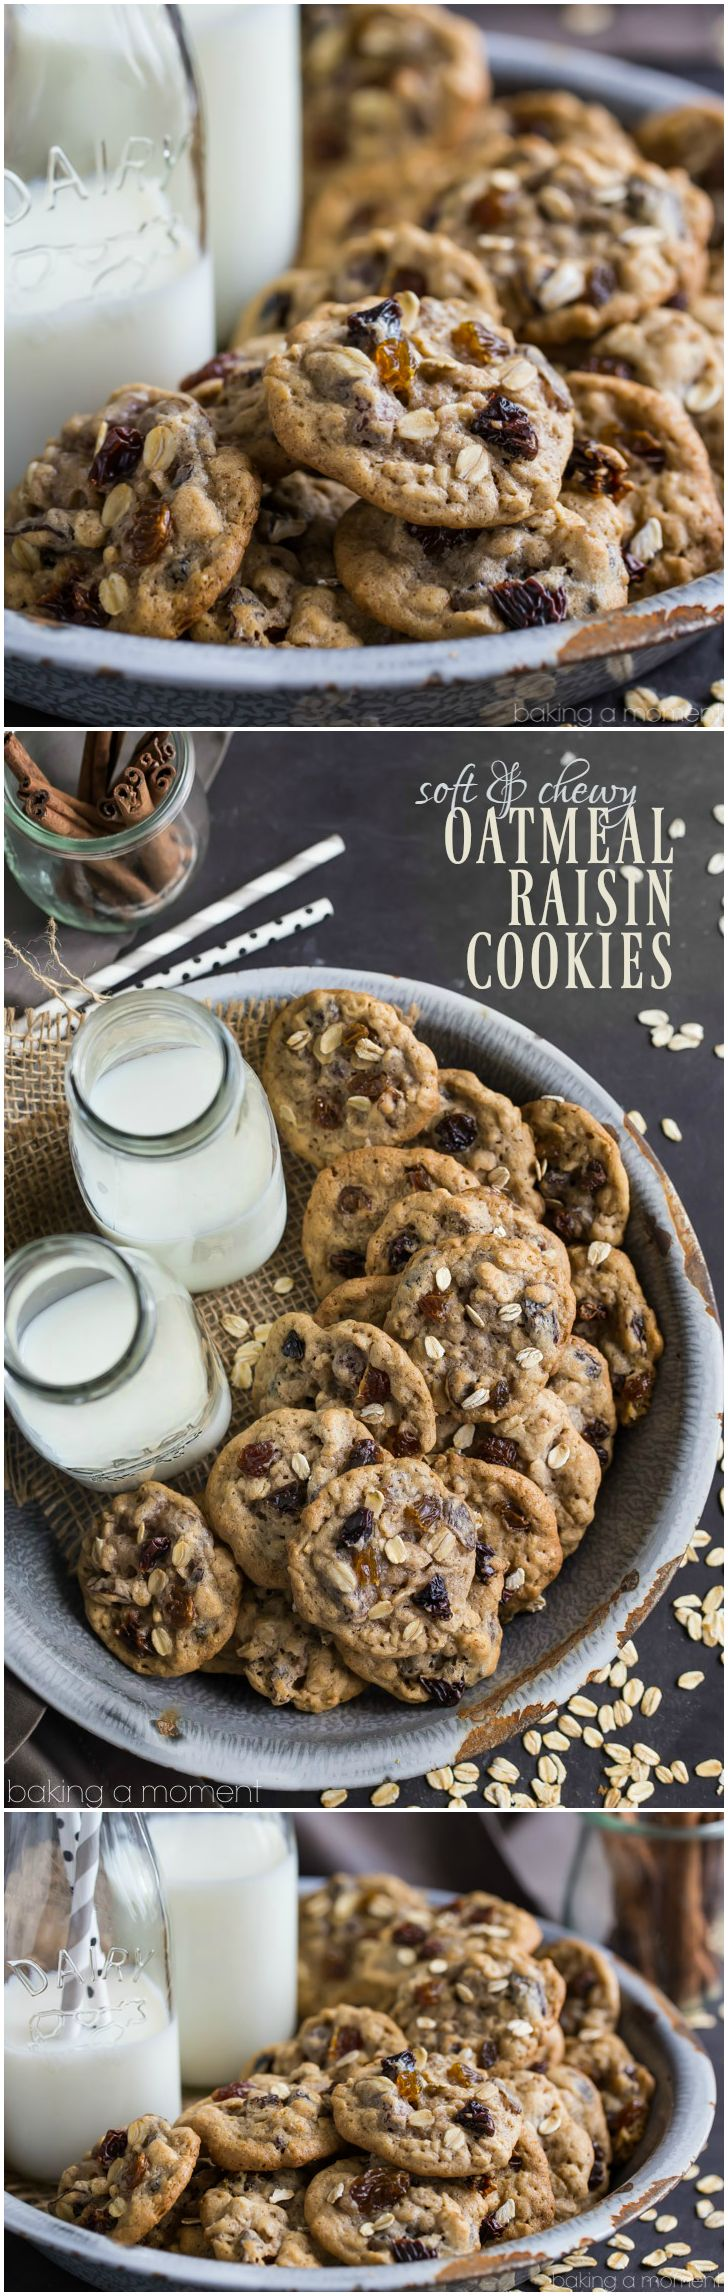 1385 best Cookies! images on Pinterest | Chocolate chips, Cookie ...